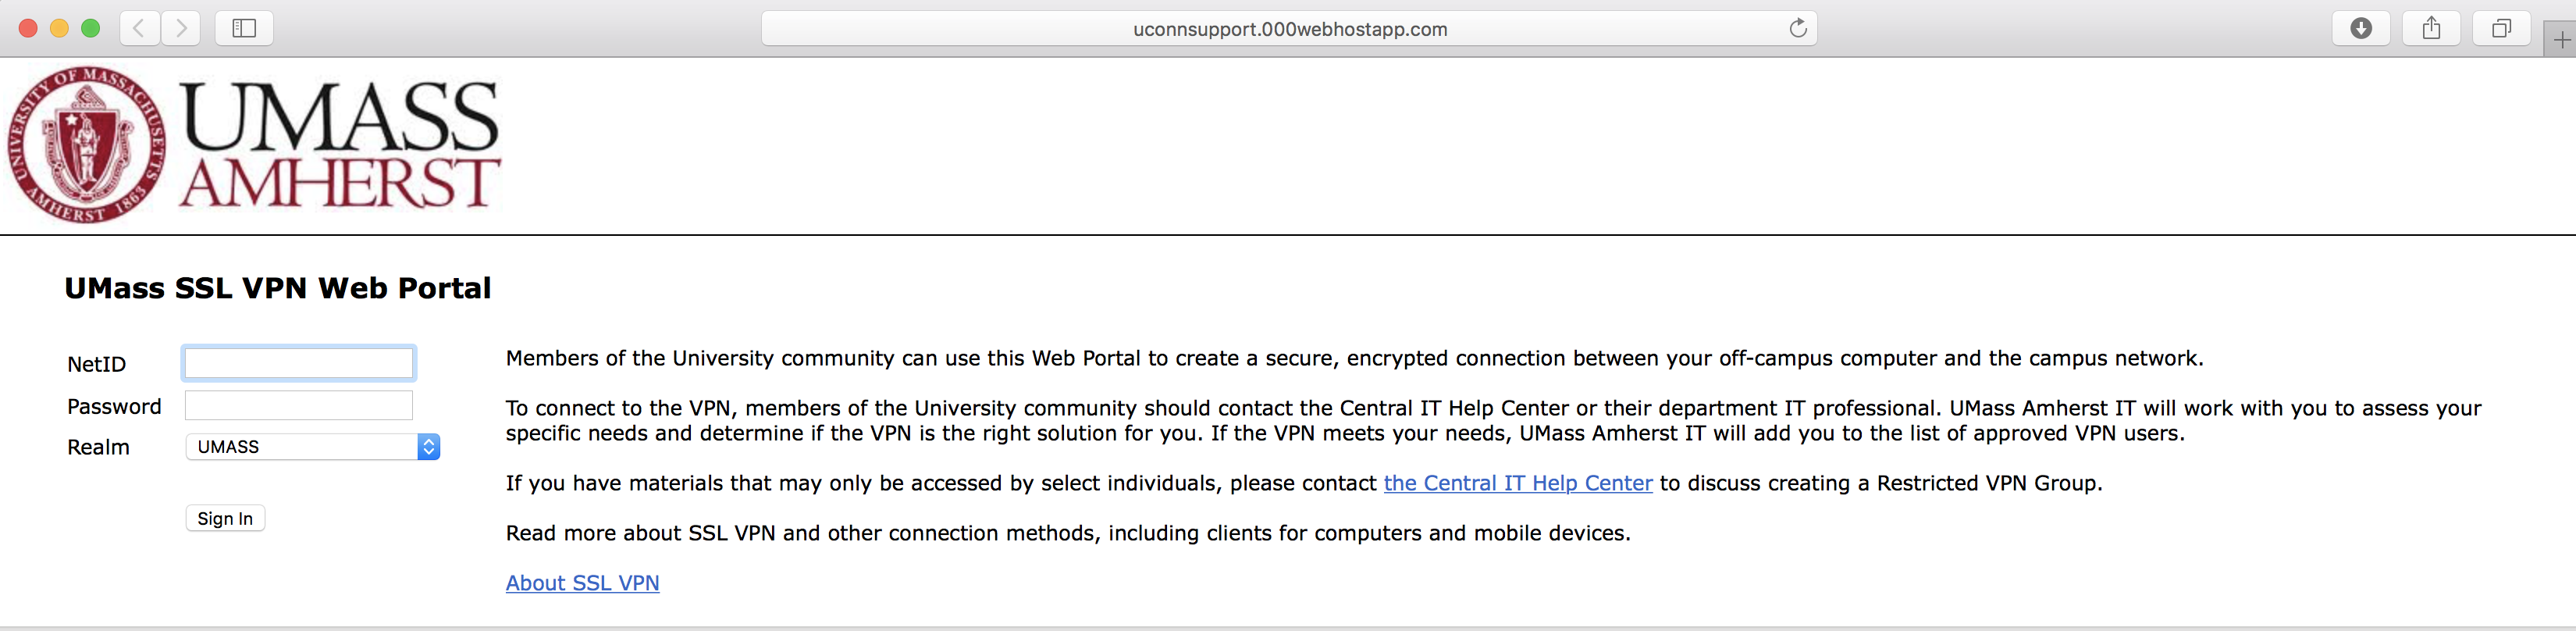 Screenshot of fake UMass SSL login screen. The web address is shown and is not a trusted UMass address.